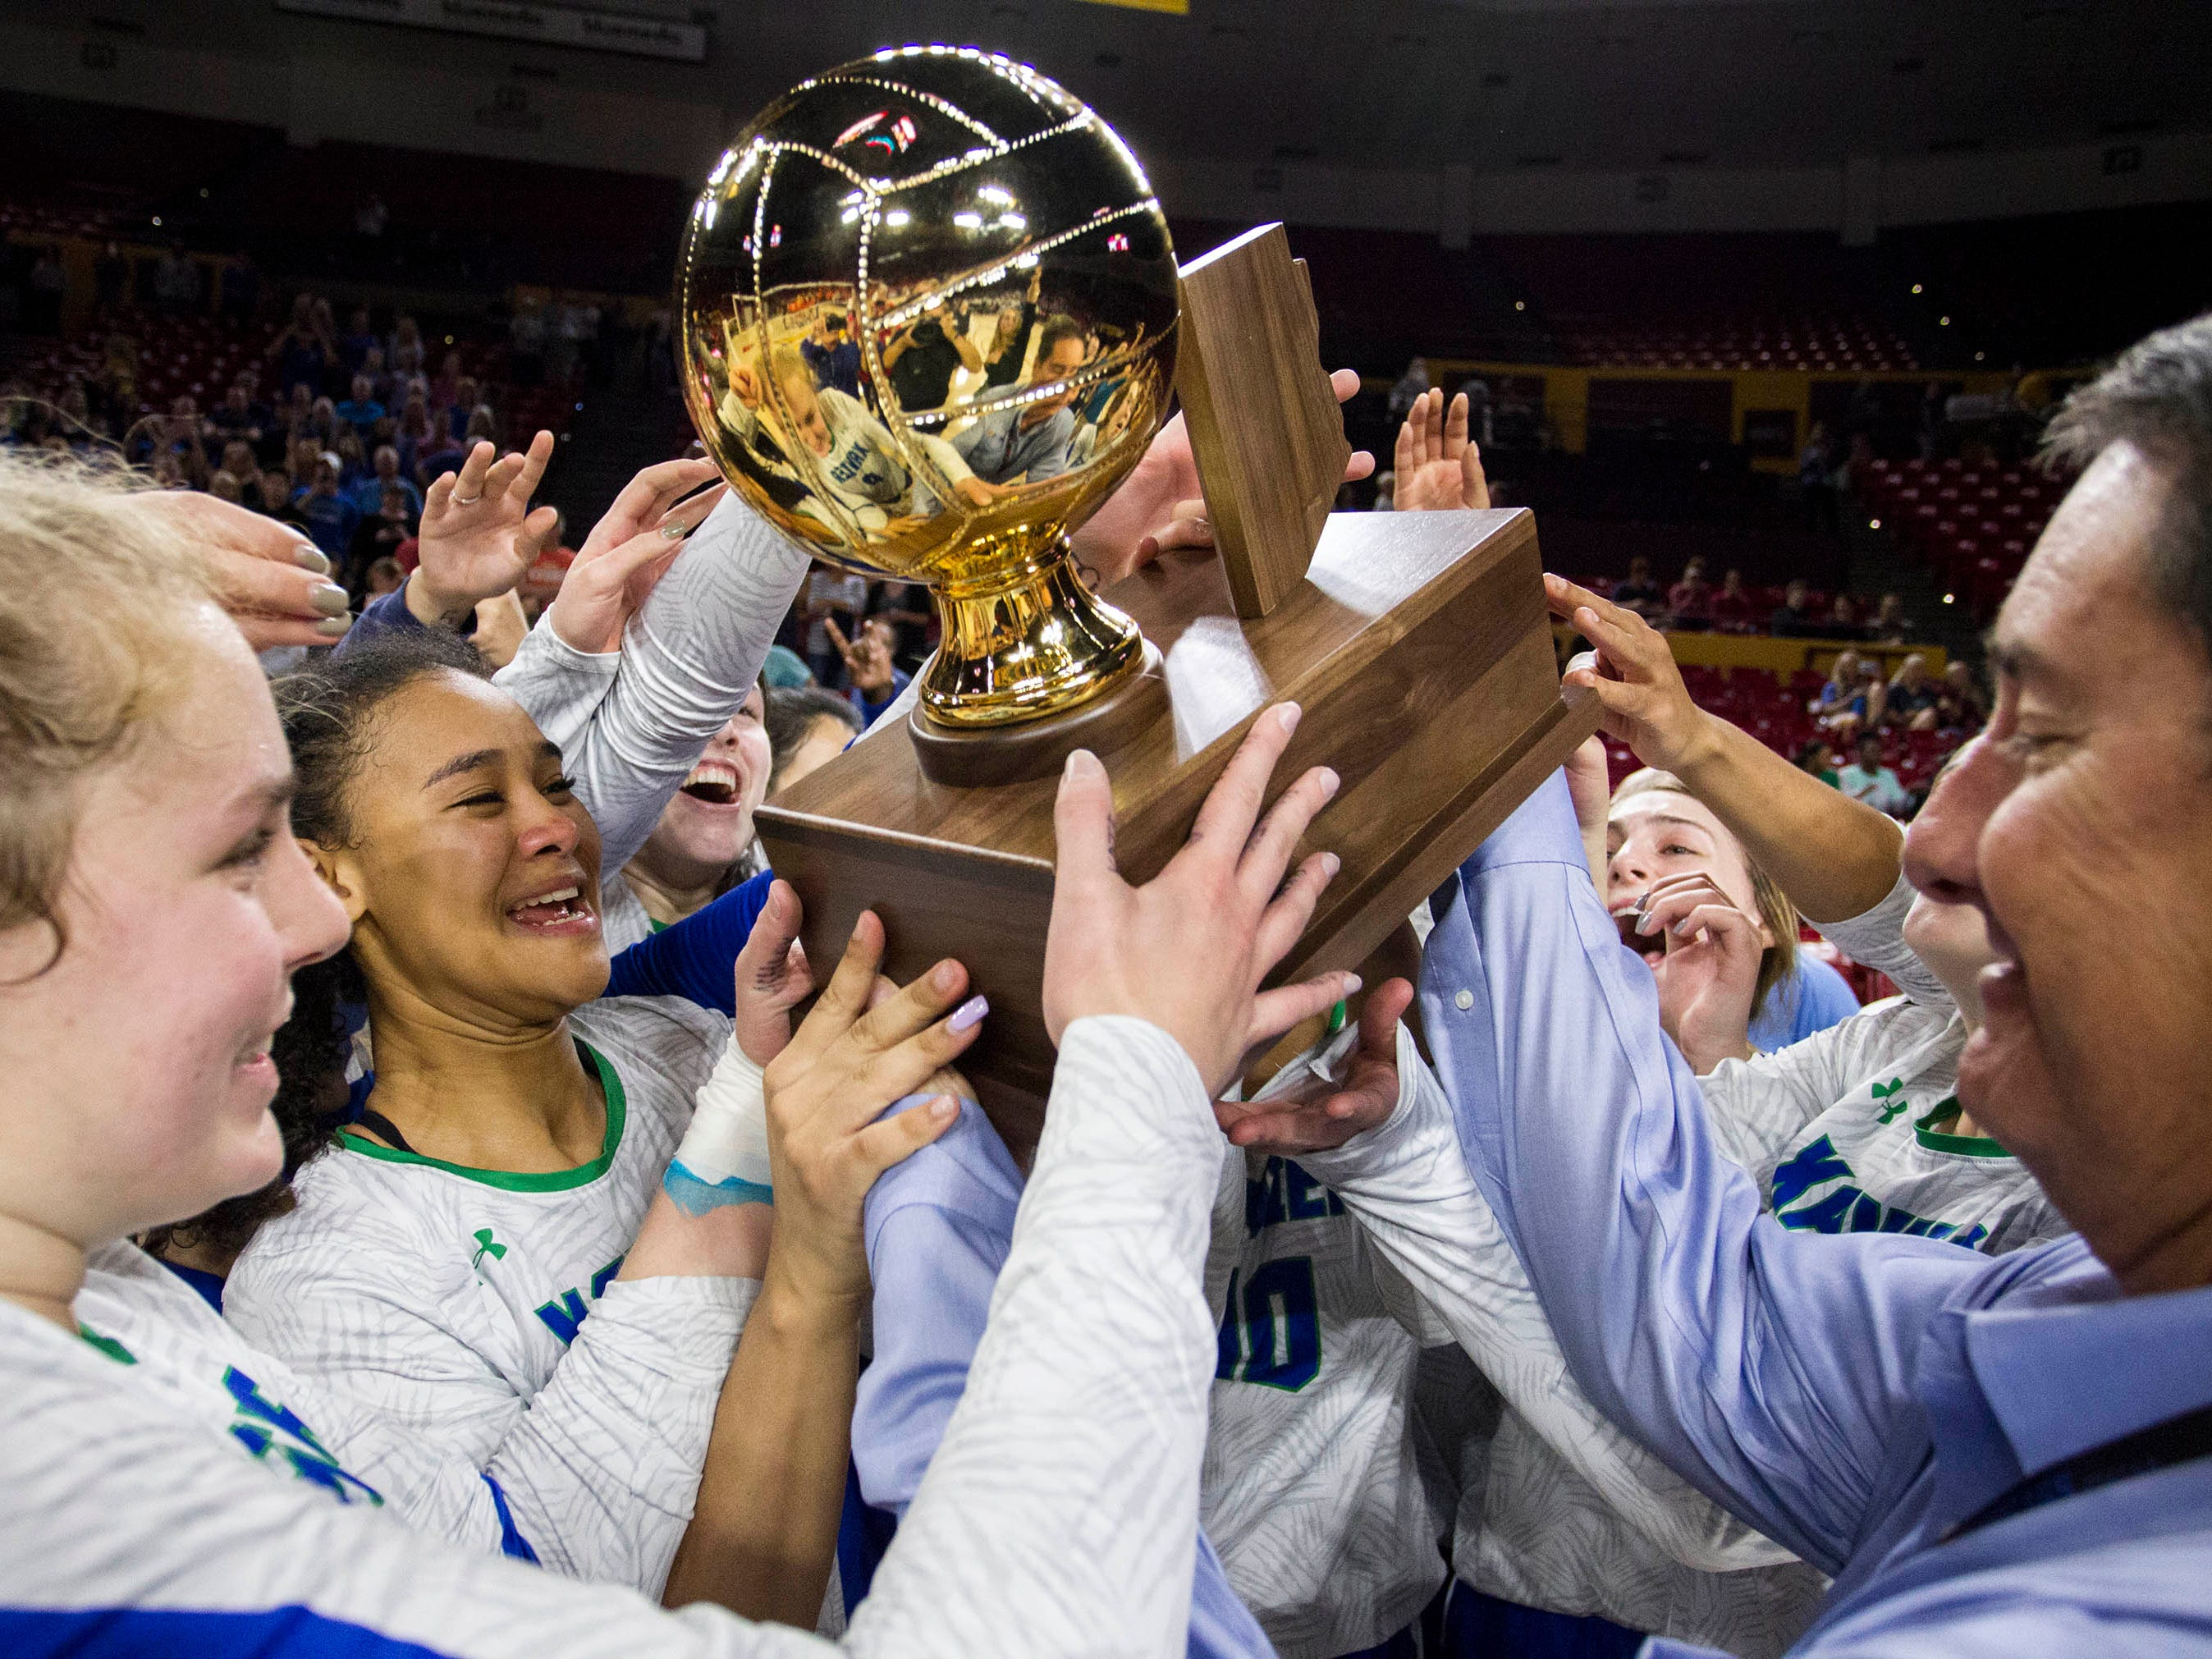 Xavier players can't wait to get their hands on the trophy after their three set win over Corona del Sol in the girls 6A volleyball state championship at Wells Fargo Arena in Tempe, Wednesday, Nov. 7, 2018.